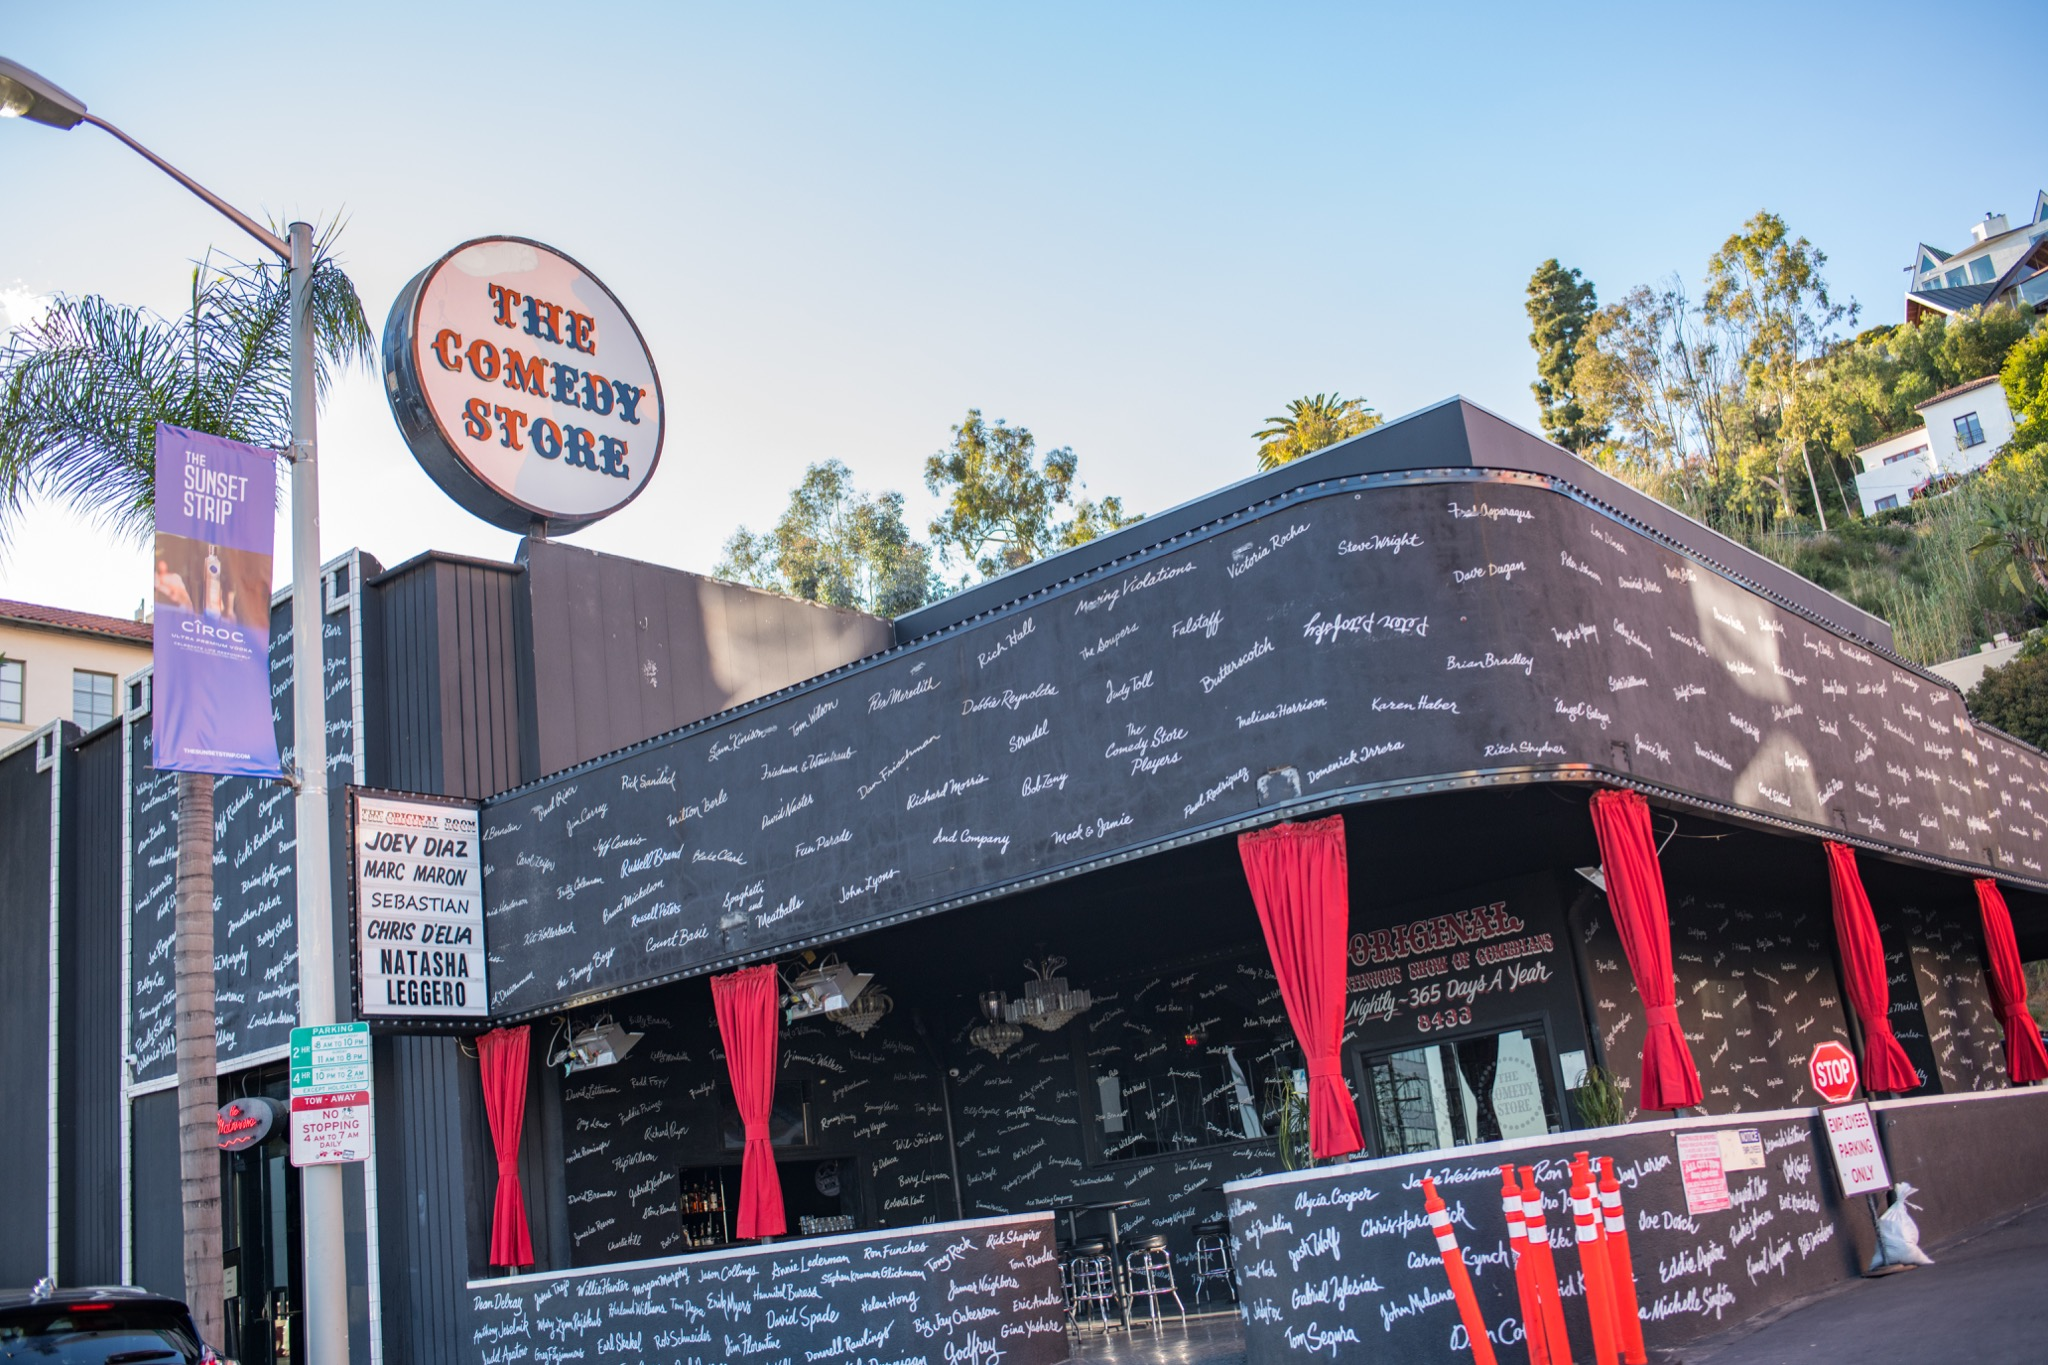 Los Angeles, CA: March 15, 2018: The Comedy Store in Los Angeles. Many famous comedians have performed at The Comedy Store.